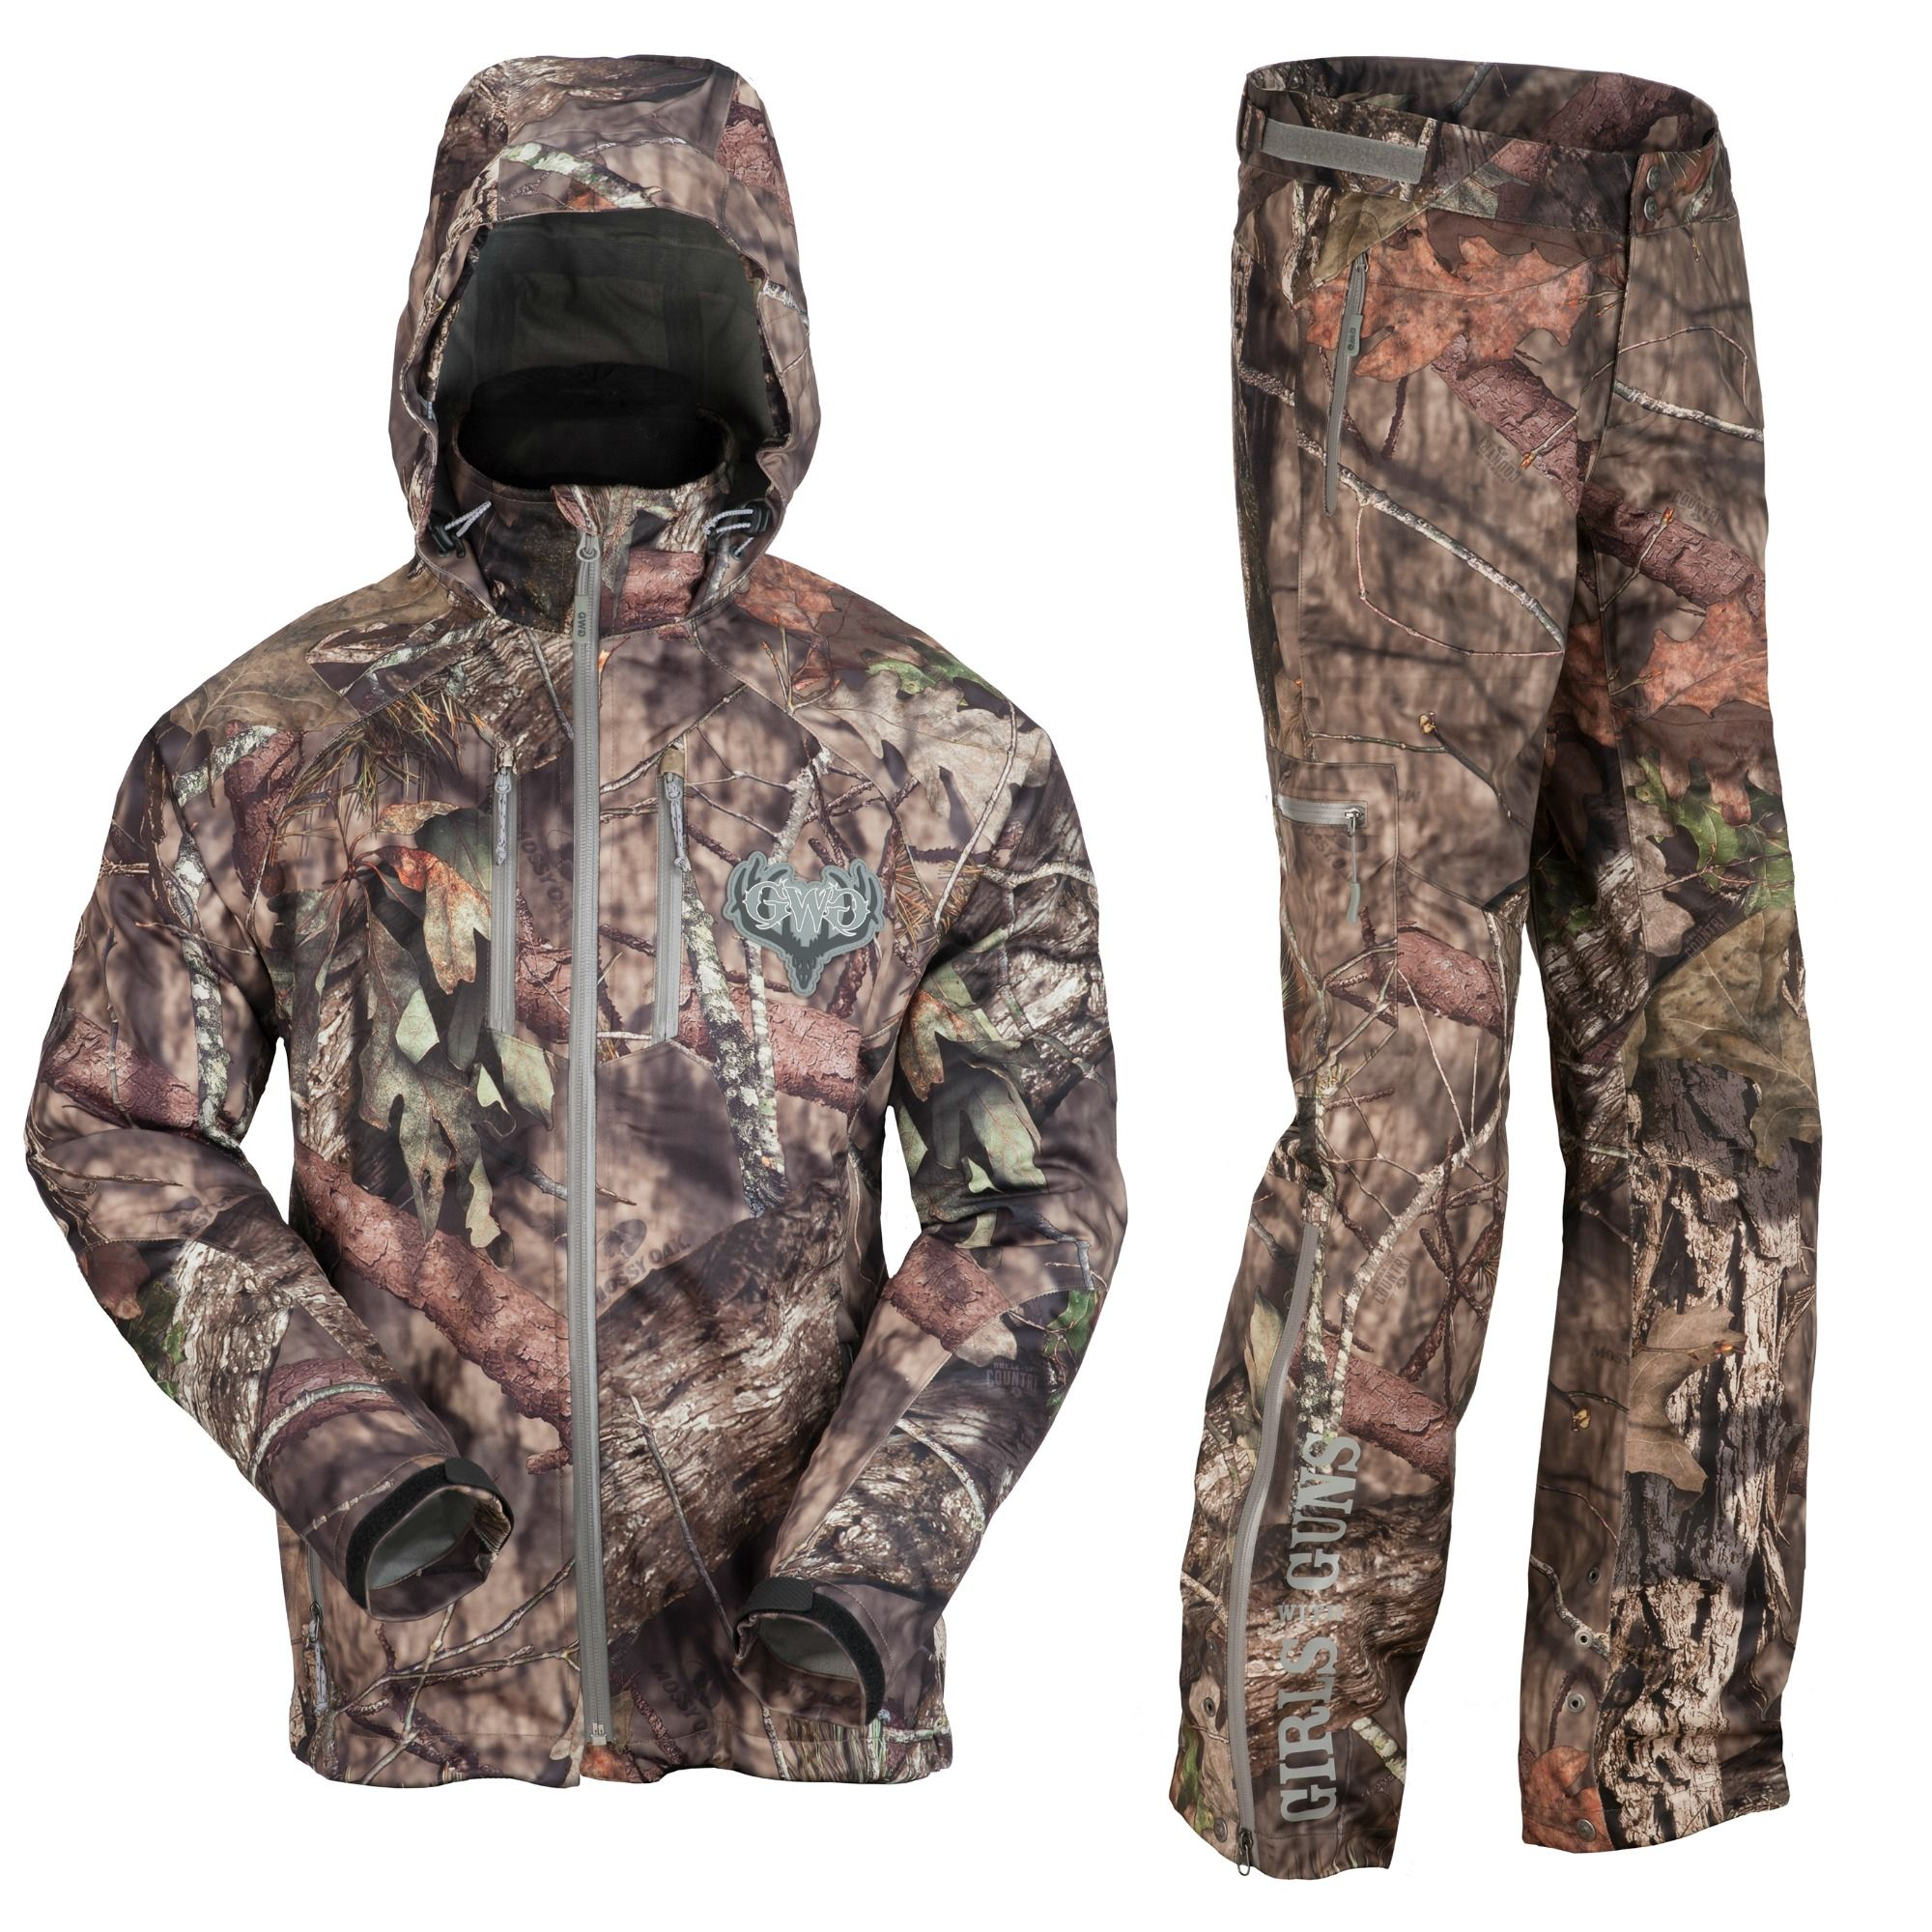 845f7c0df299e Featuring full functionality and waterproof features, the rain jacket and  pants were designed with a woman's body in ...